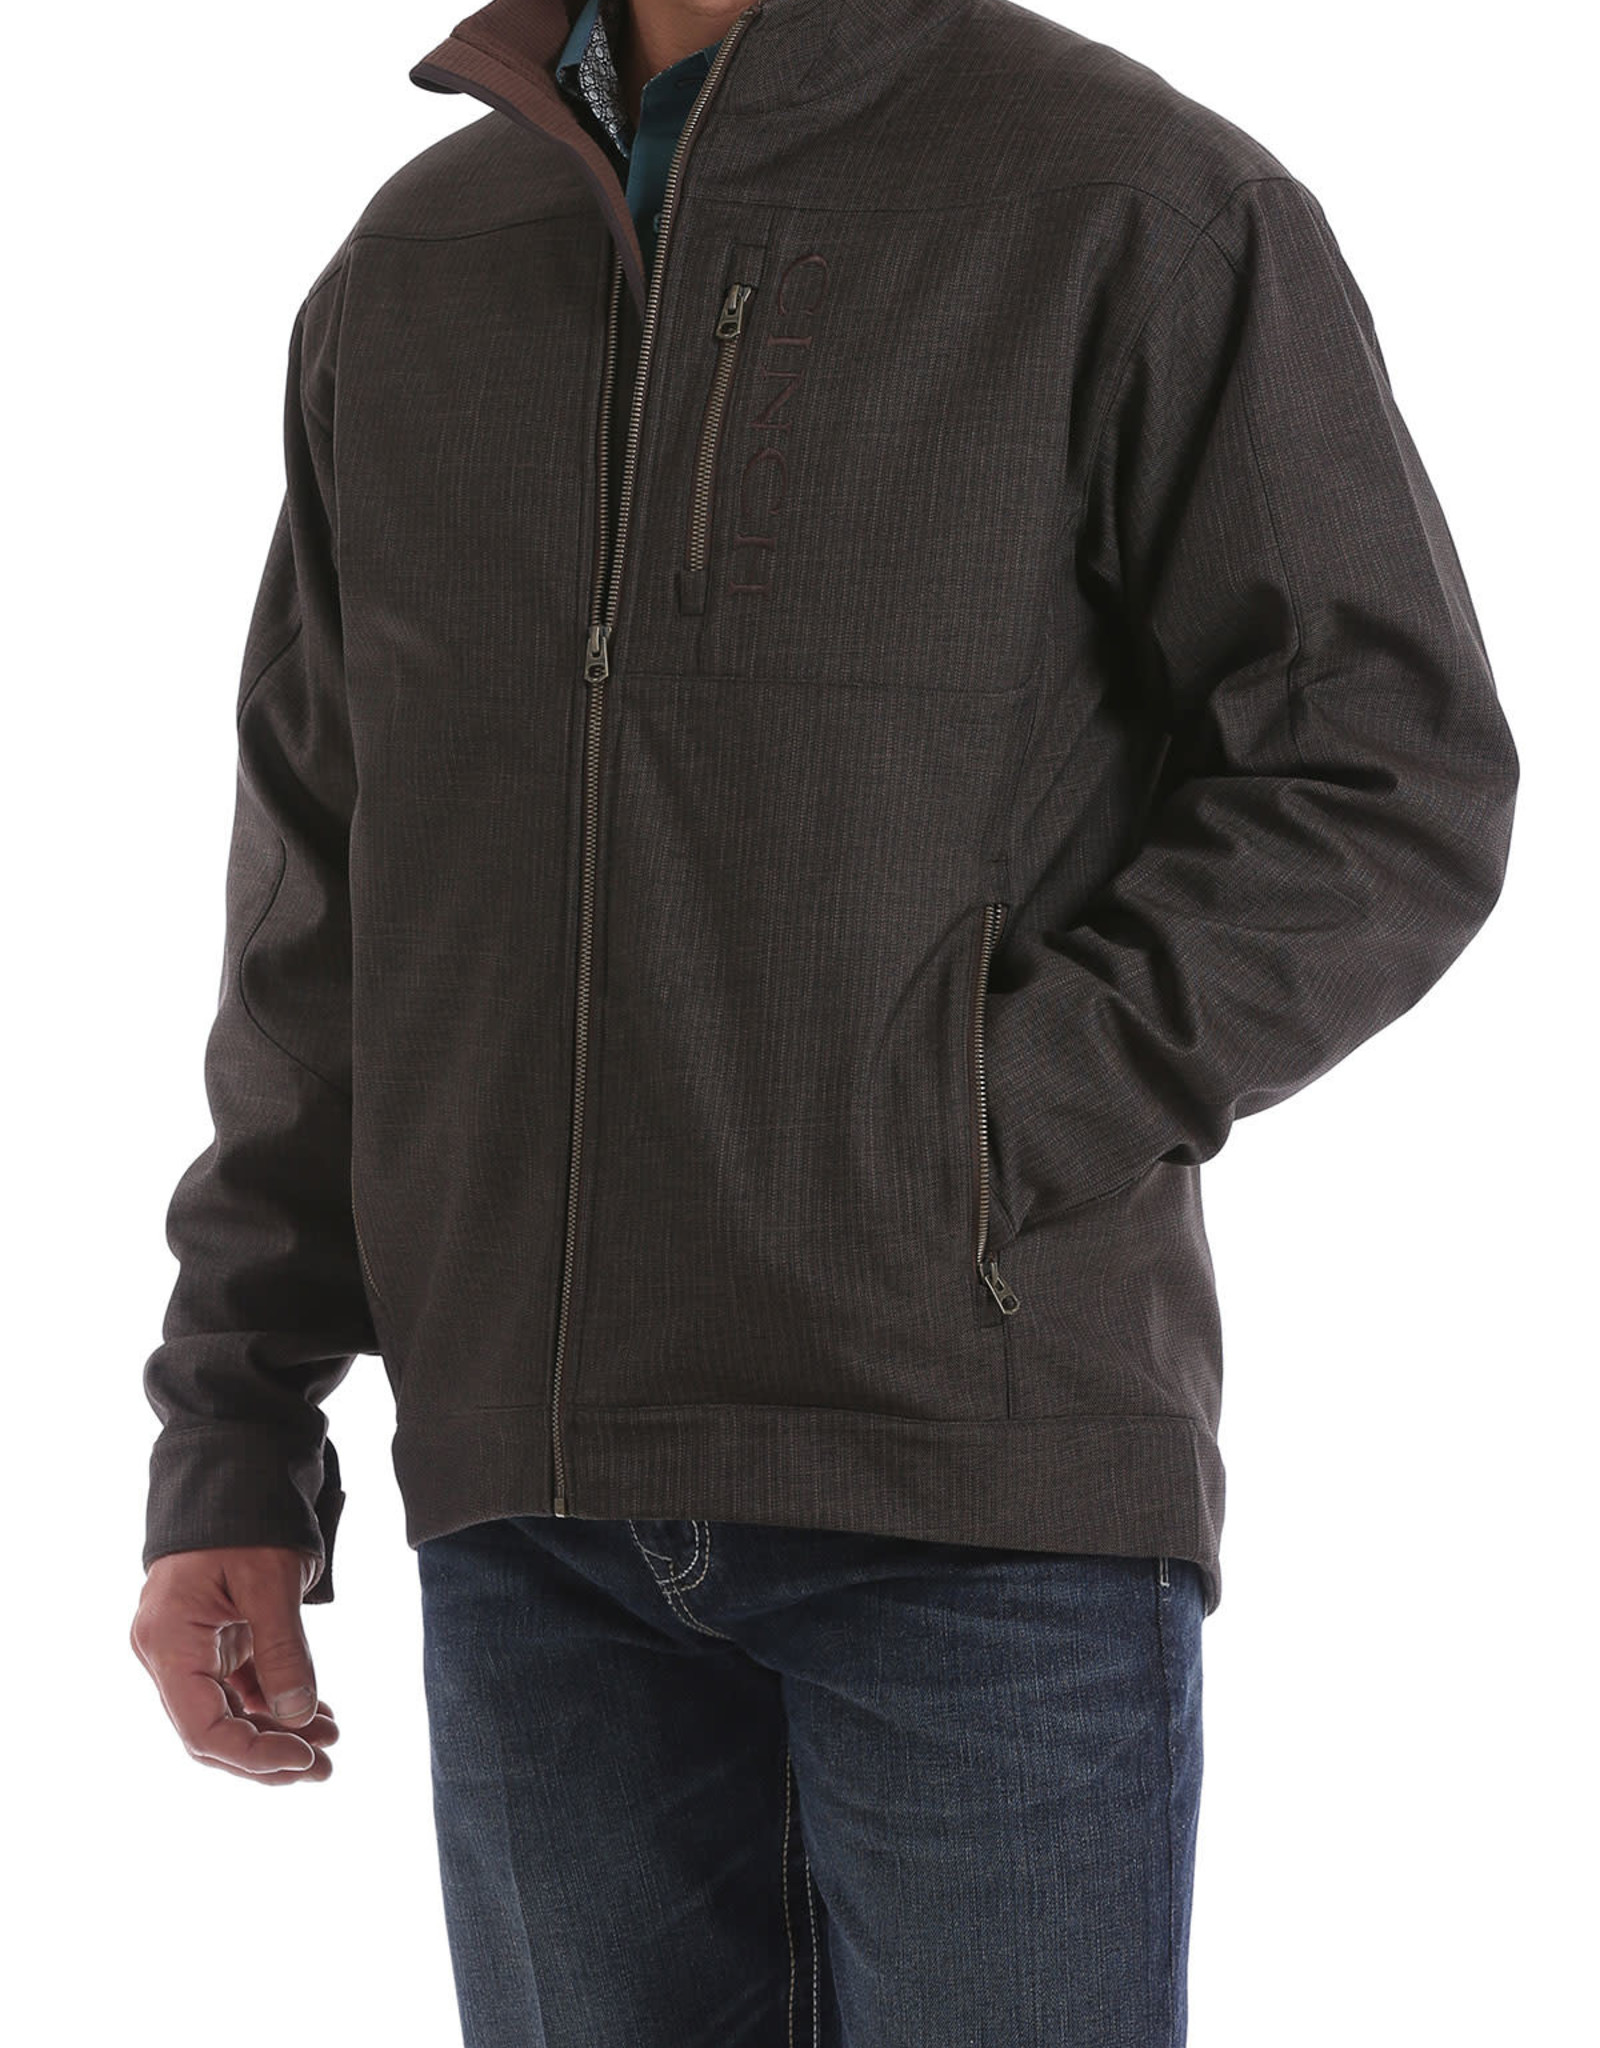 Cinch Mens Cinch Concealed Carry Textured Bonded Brown Jacket